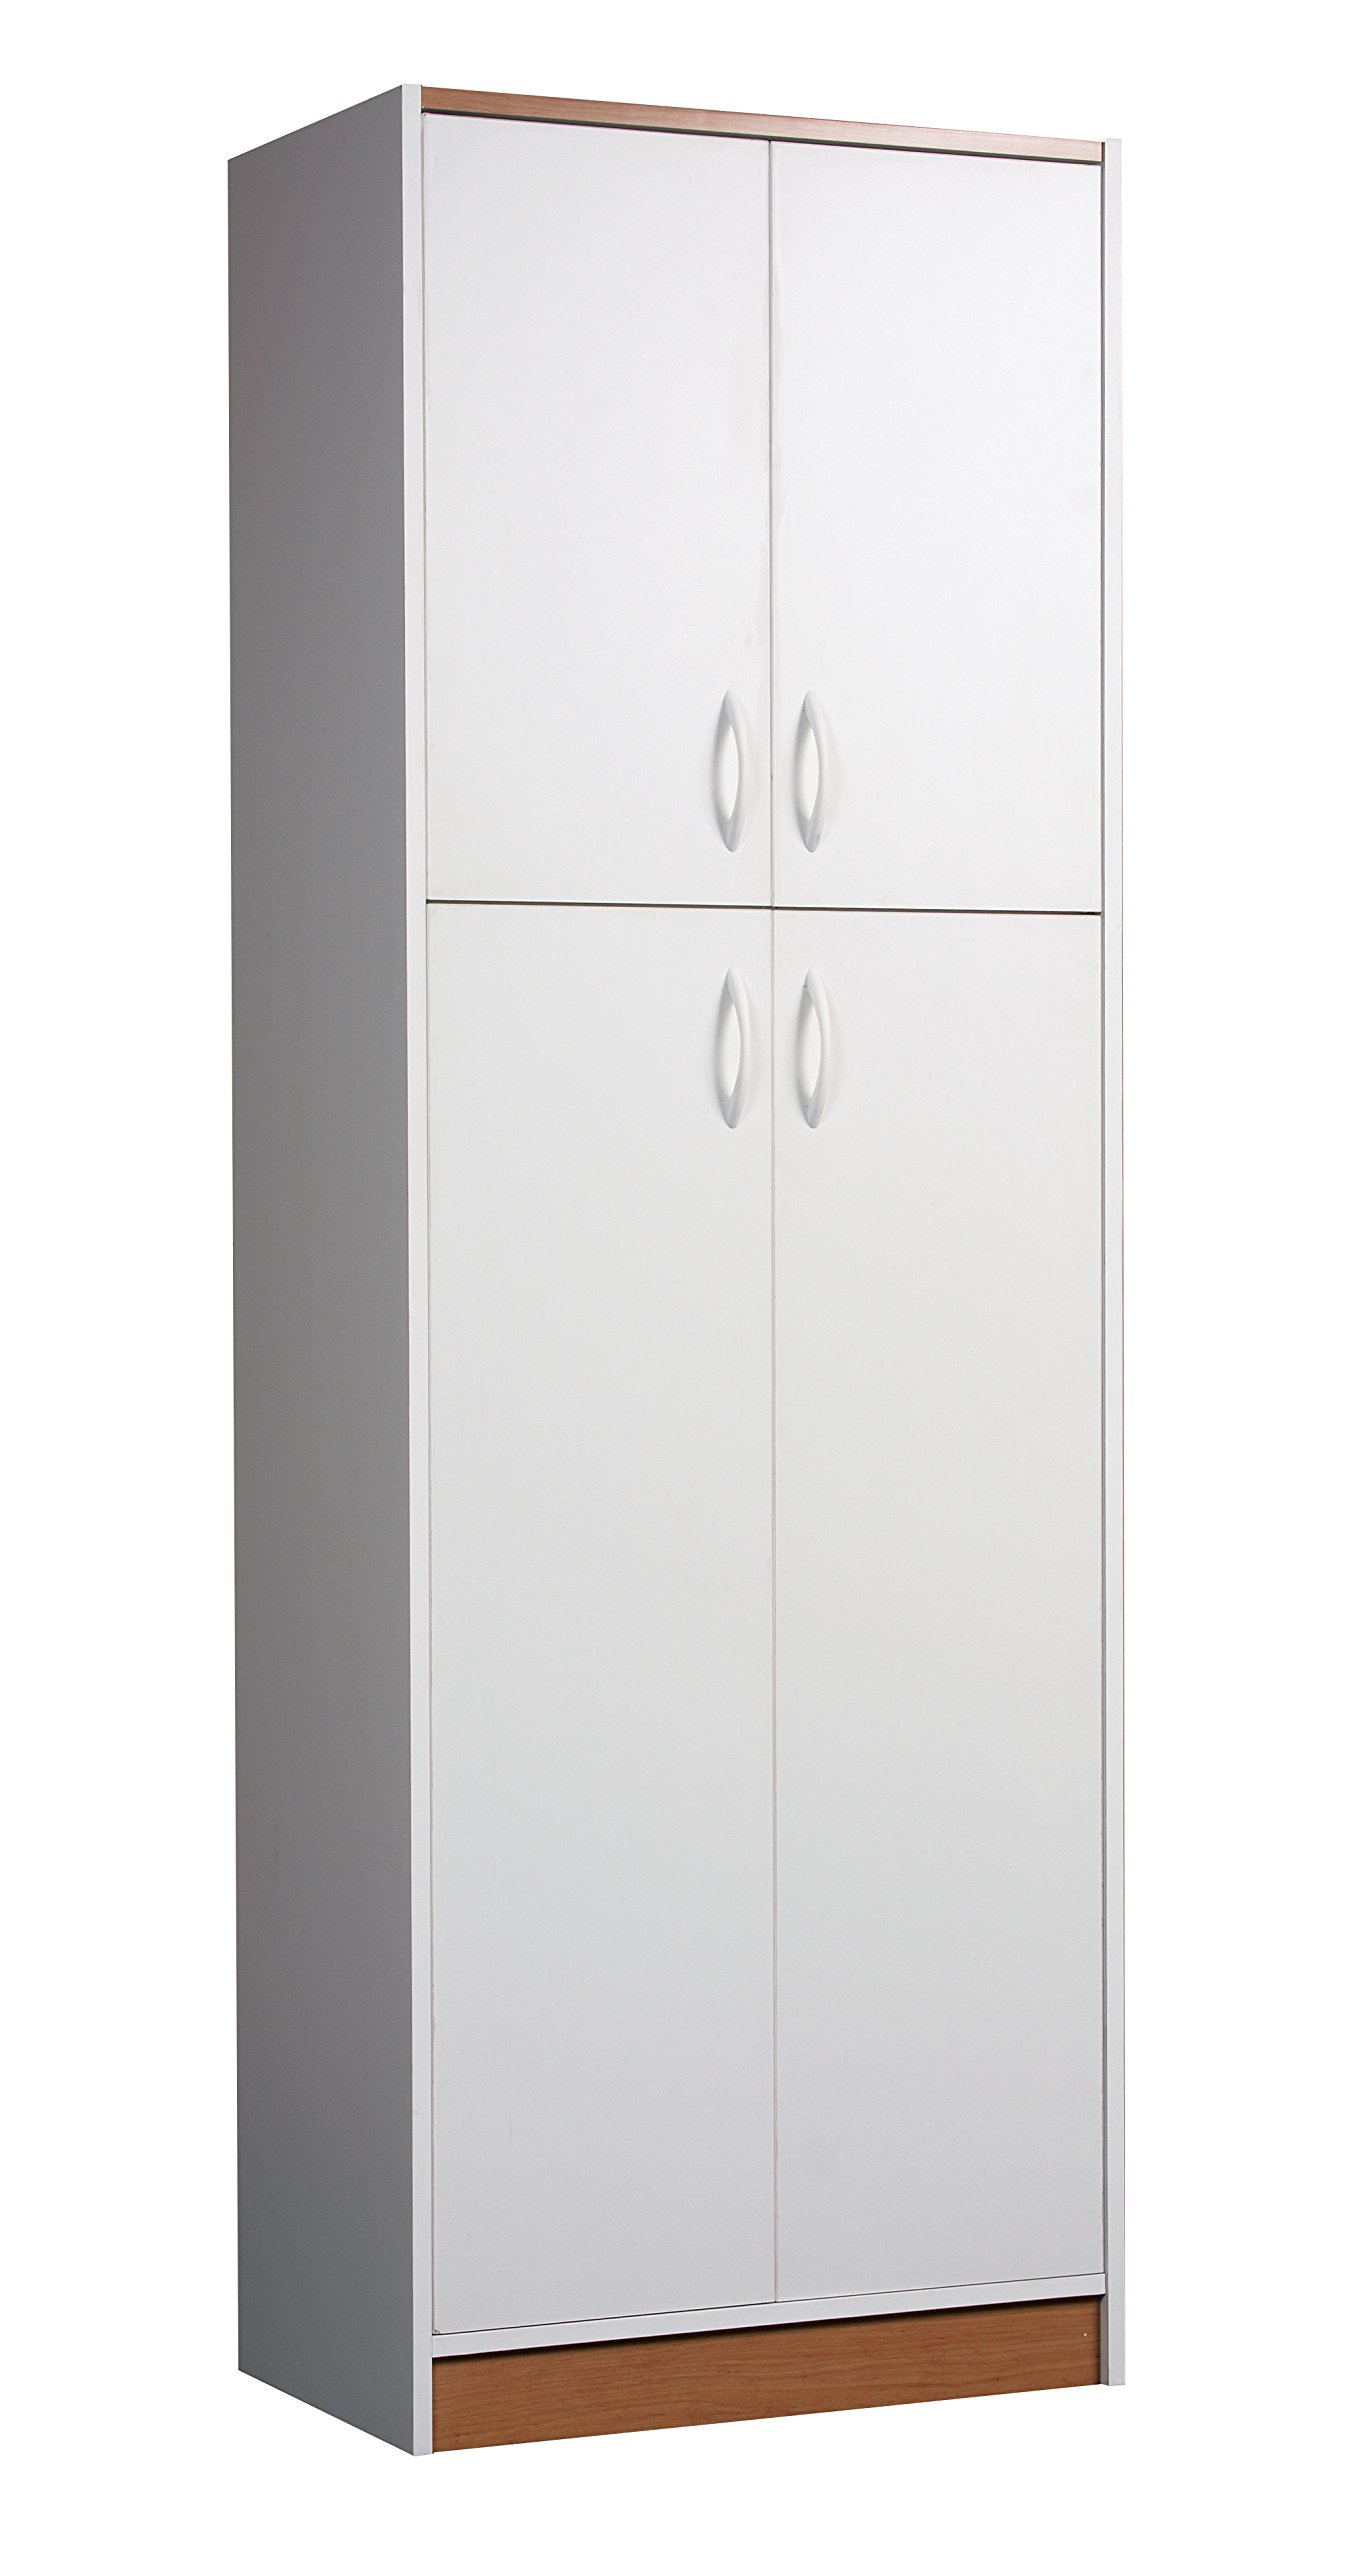 Mylex Four Door Pantry, Two Fixed and Three Adjustable Shelves, 71.5 H x 24.32 W x 14.5 D Inches, White with Oak Accents, Assembly Required (42311) by Mylex